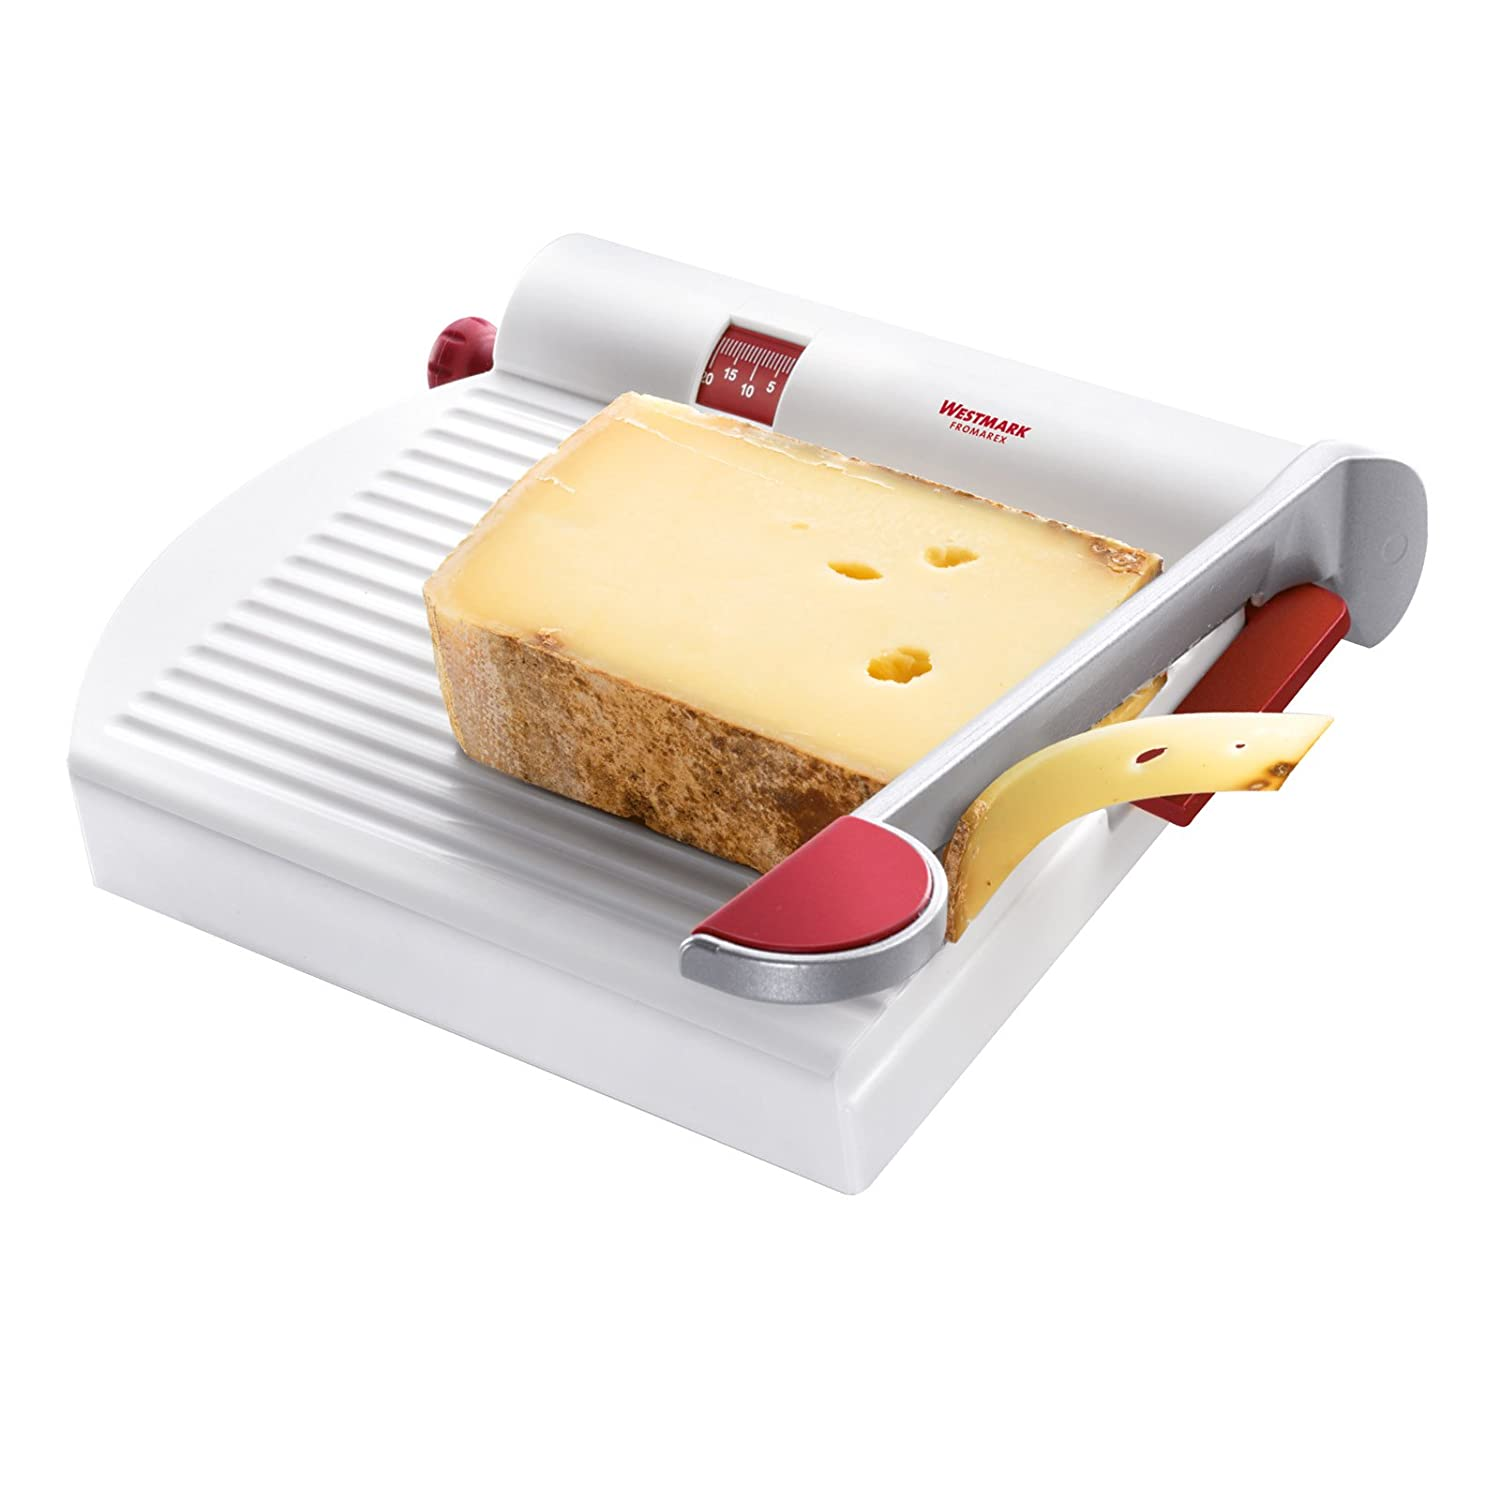 Westmark Germany Multipurpose Stainless Steel Cheese and Food Slicer with Board and Adjustable Thickness Dial (White) 70002260